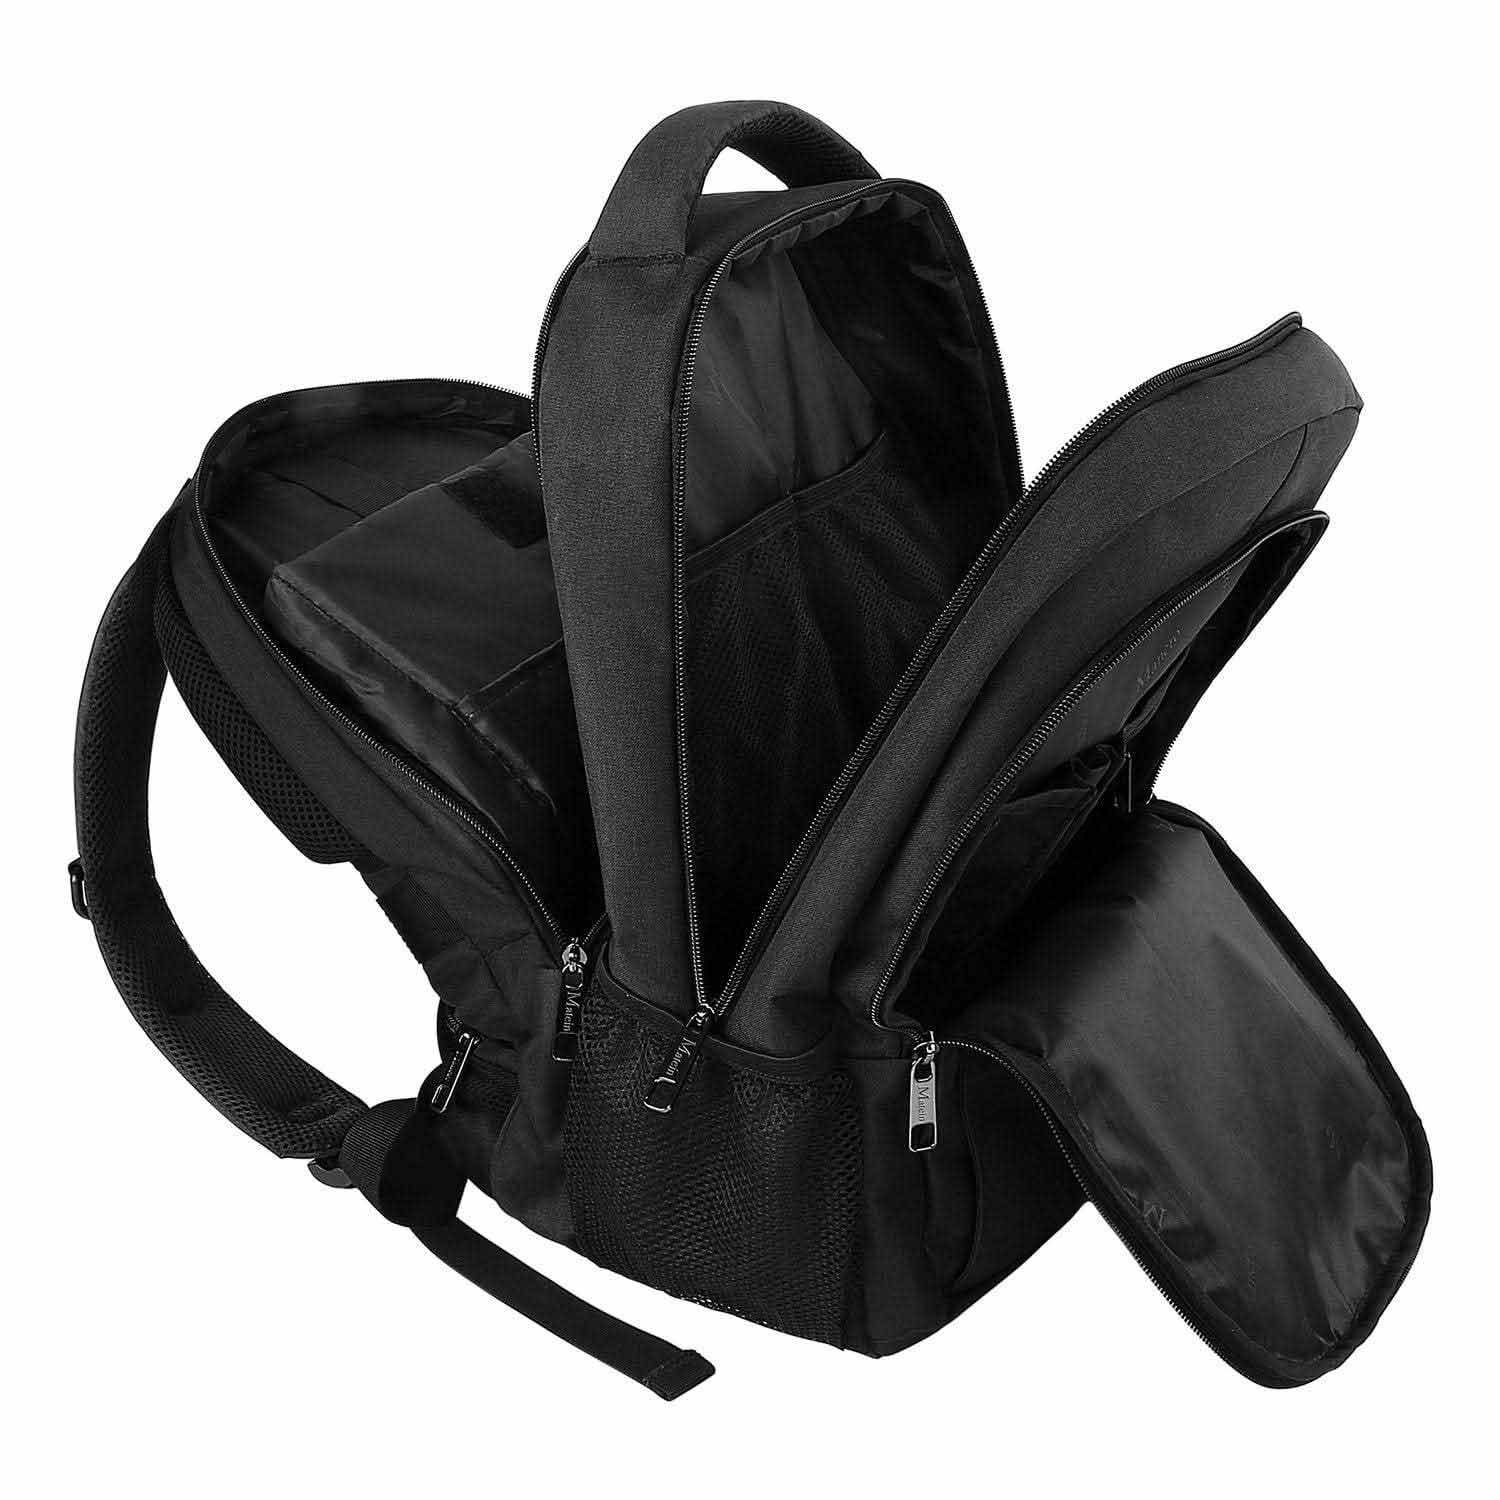 Matein Mlassic Travel Laptop Backpack - Matein